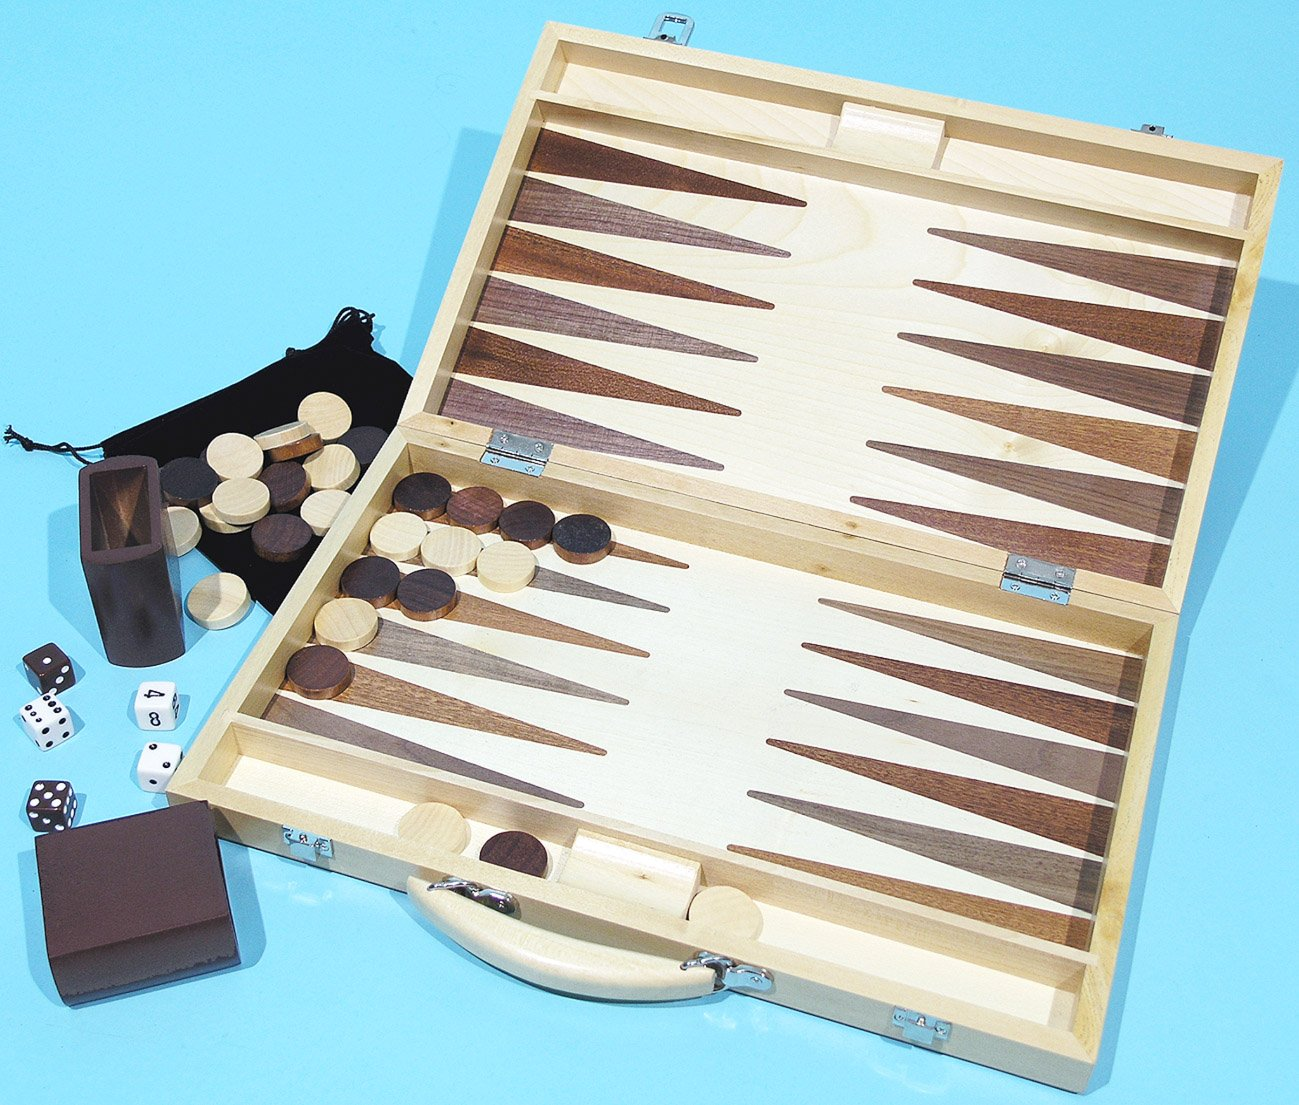 A Kent & Cleal game Backgammon set, solid timber with veneered board - 00452 Kent & Cleal Games